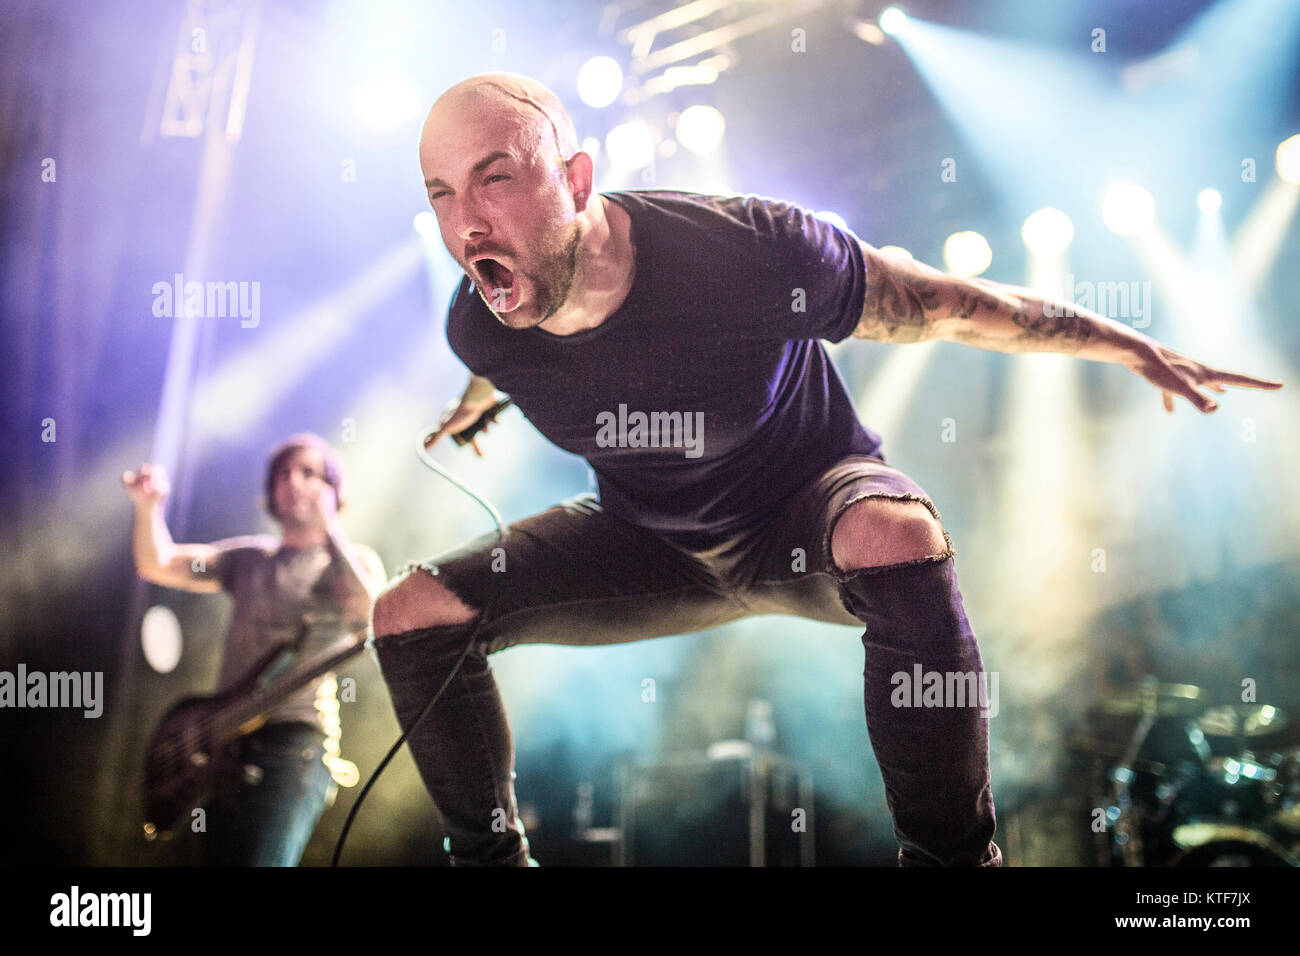 d53aaafd1e4 The American Christian metalcore band August Burns Red performs a live  concert at the Norwegian music